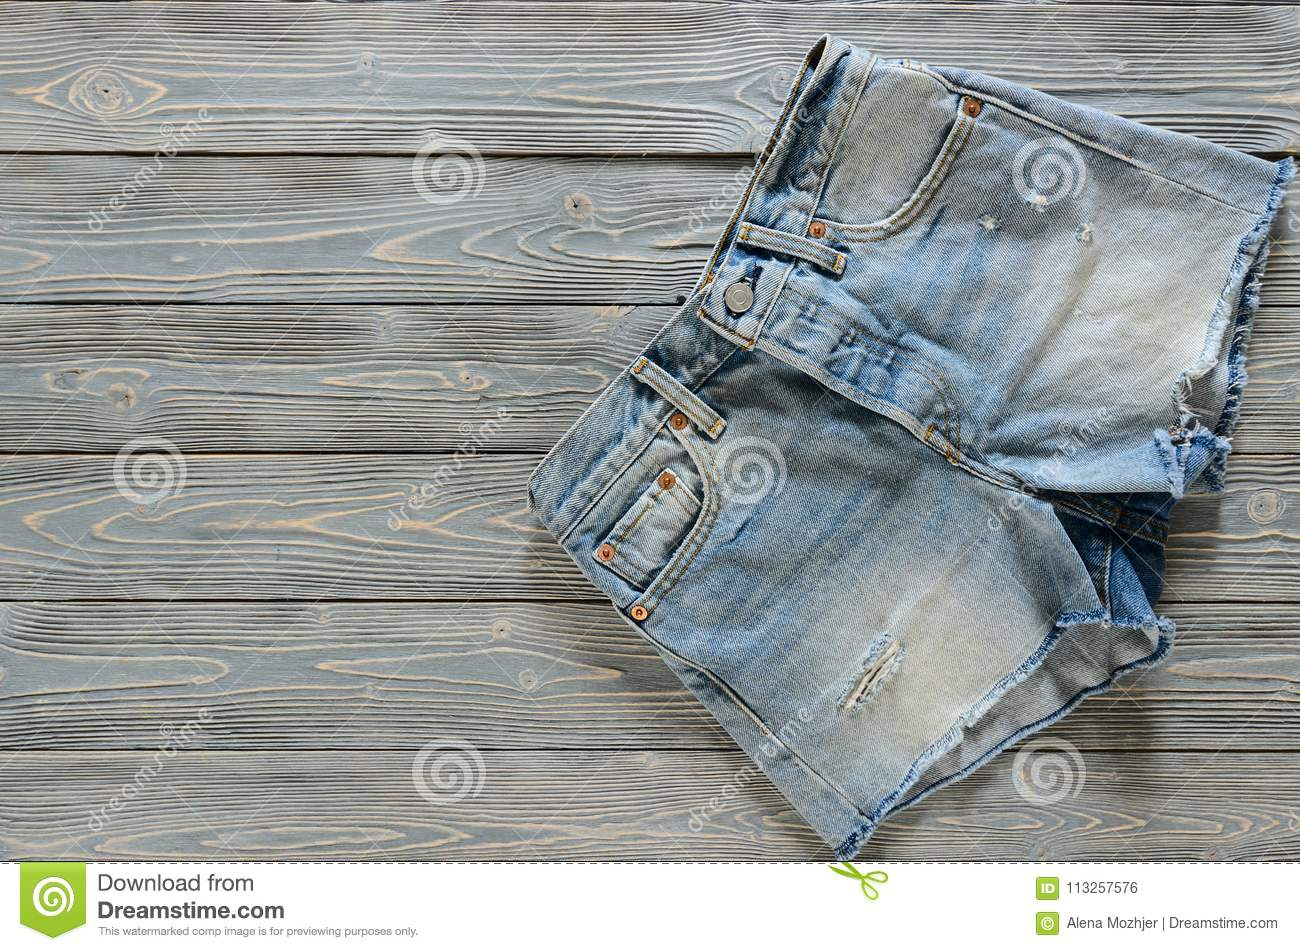 e75d236883 Womens clothing denim shorts on grey wooden background with copy space.  Trendy fashion outfit. Shopping concept. Mock up for online store. Flat lay.